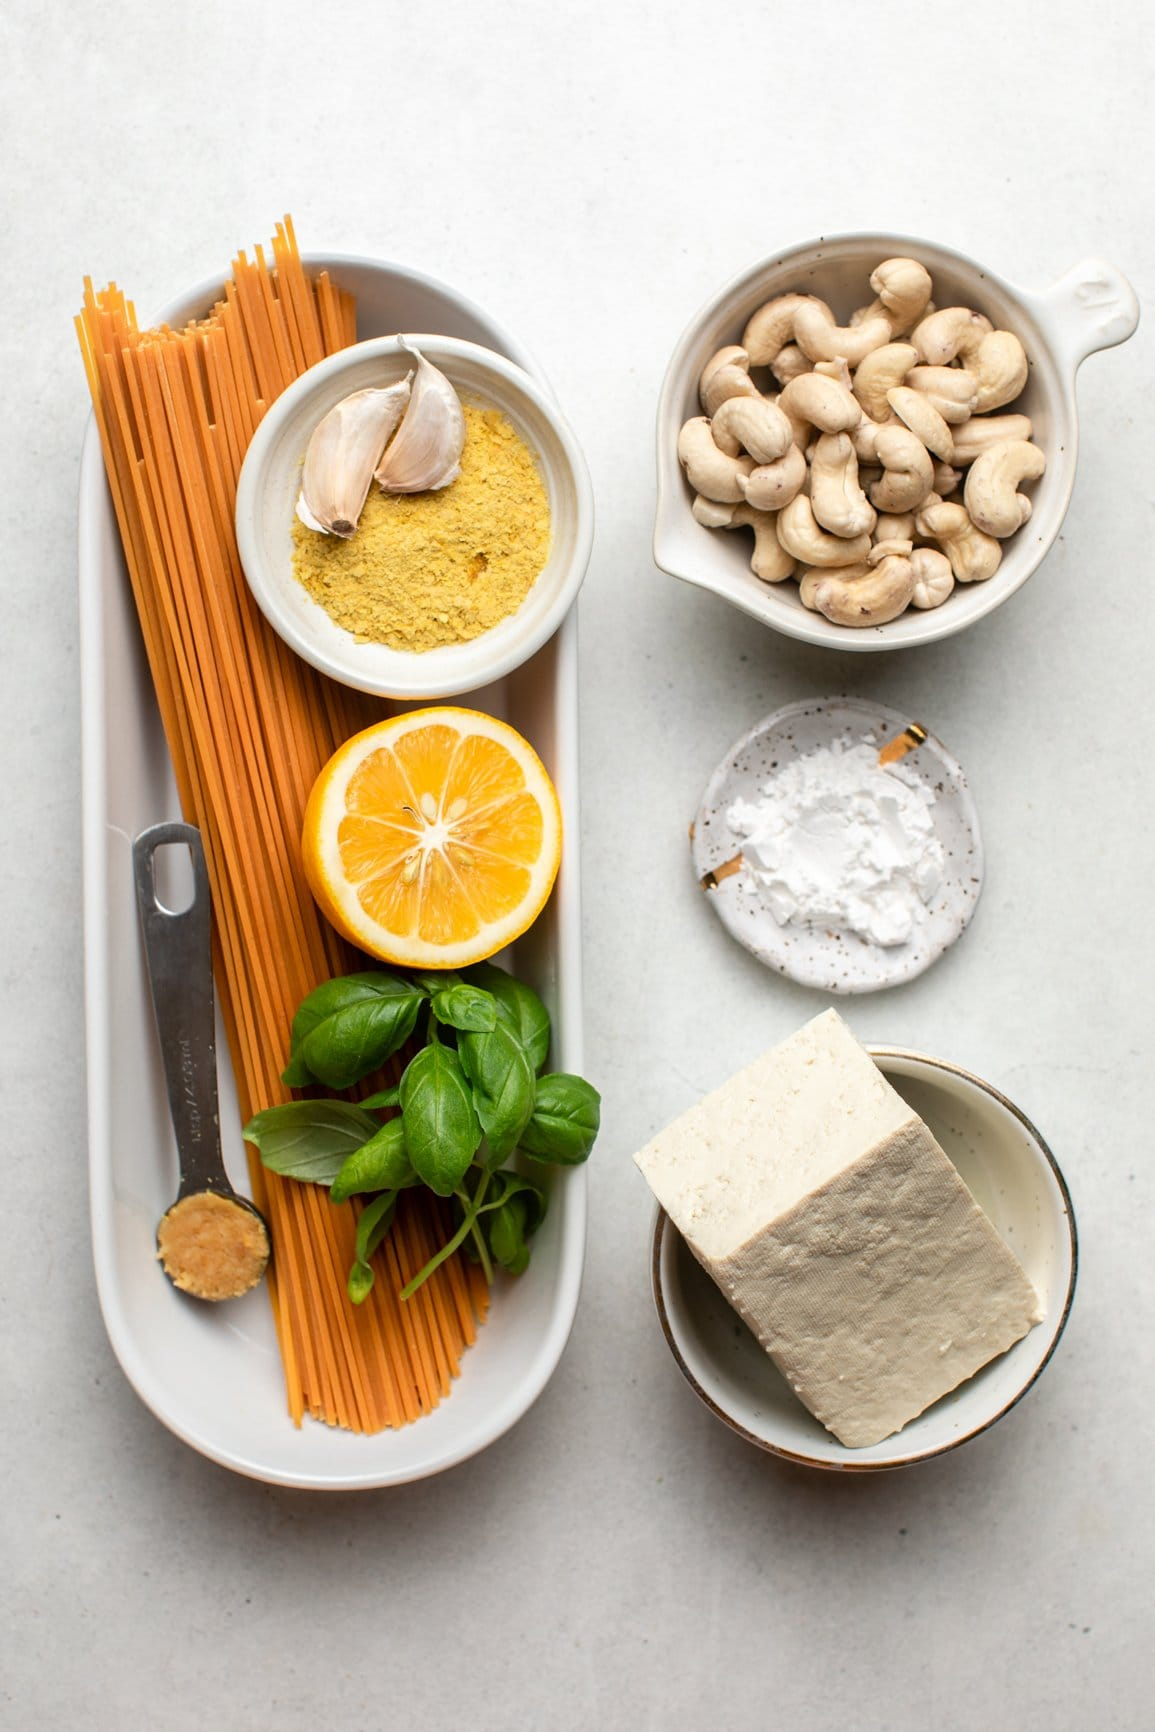 ingredients for lemon ricotta pasta in small white bowls on stone background